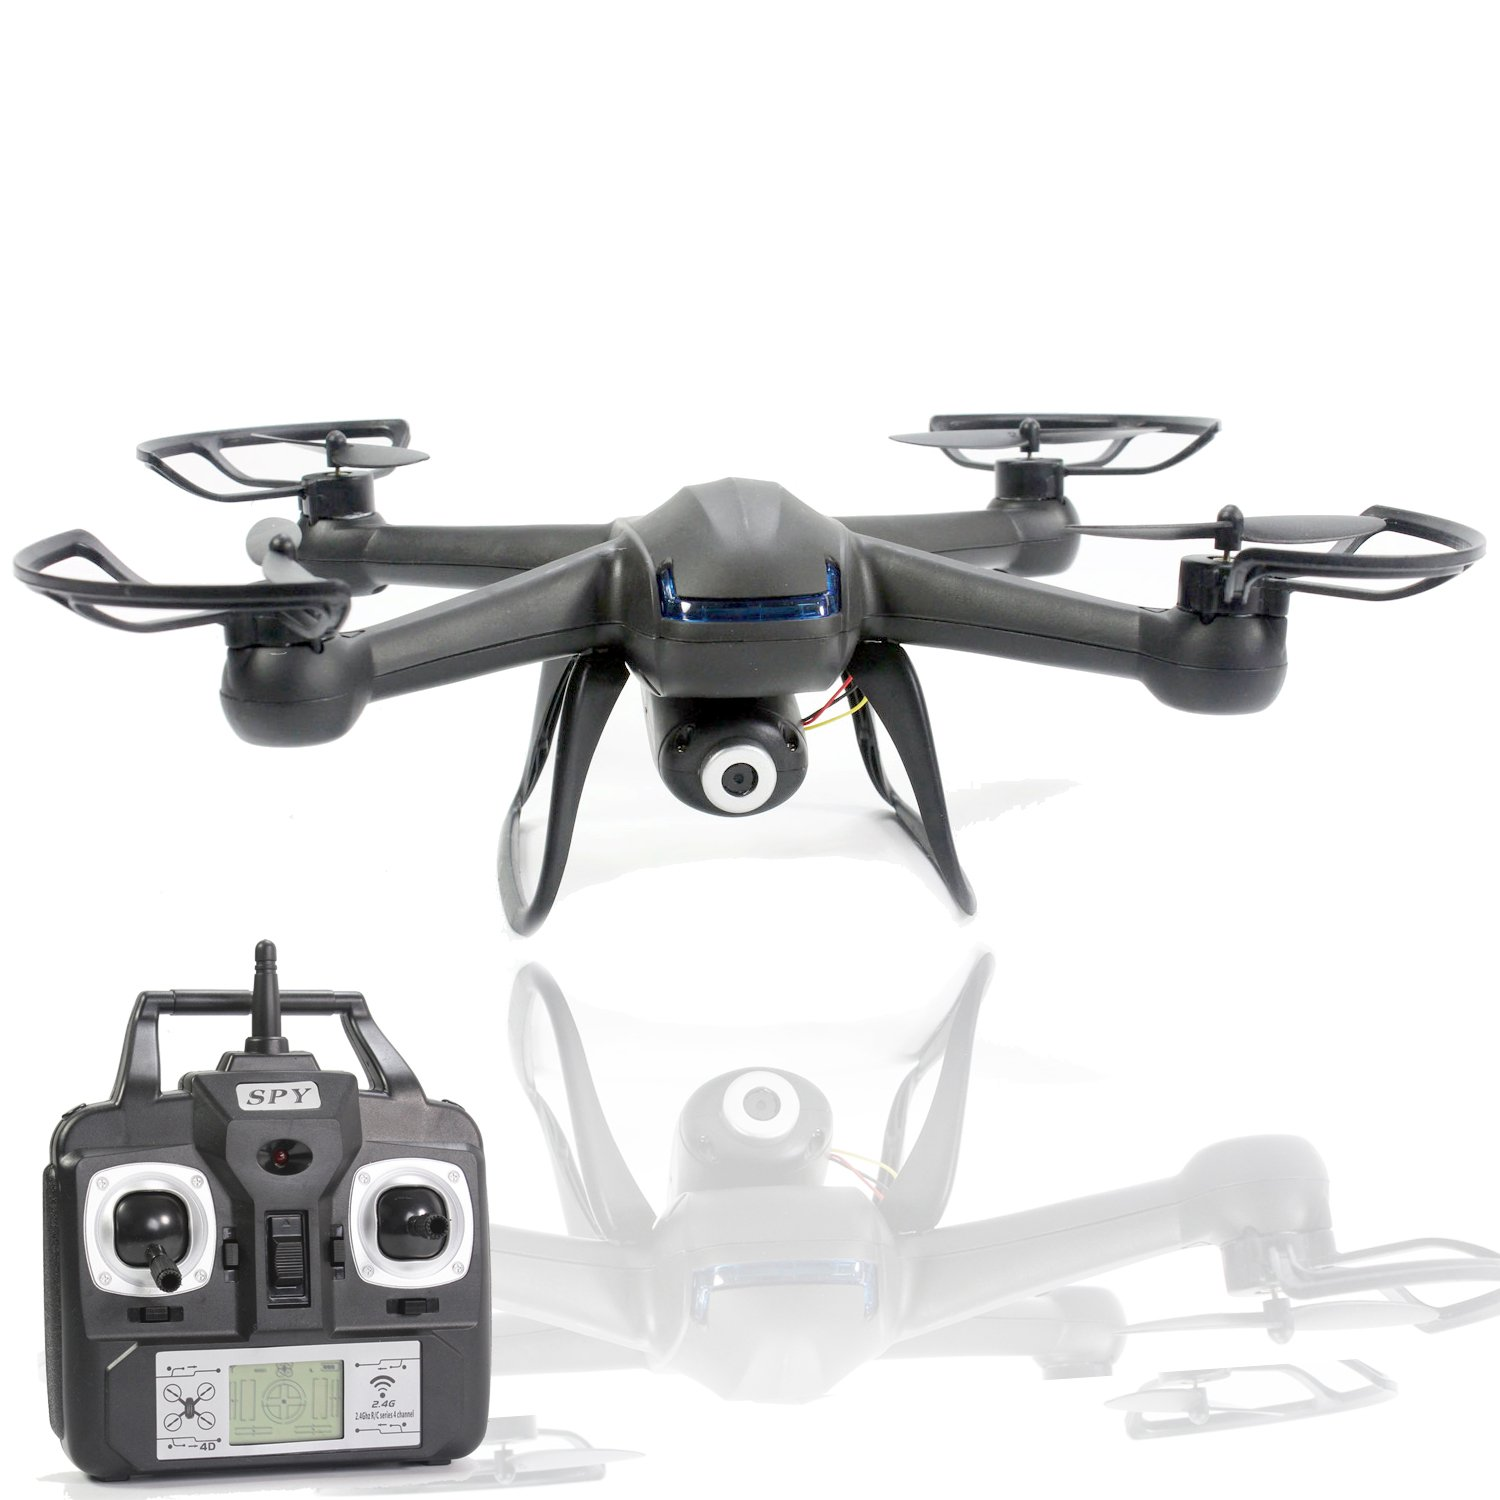 Spy Drone with Camera - X007 Quadcopter (3rd Gen) HD Camera 720p Video 2MP, 6 Axis Gyroscope, 7.4V Battery, 3D Flip Roll, 4 Ch 2.4 ghz Long Range with KiiToys USA Warranty